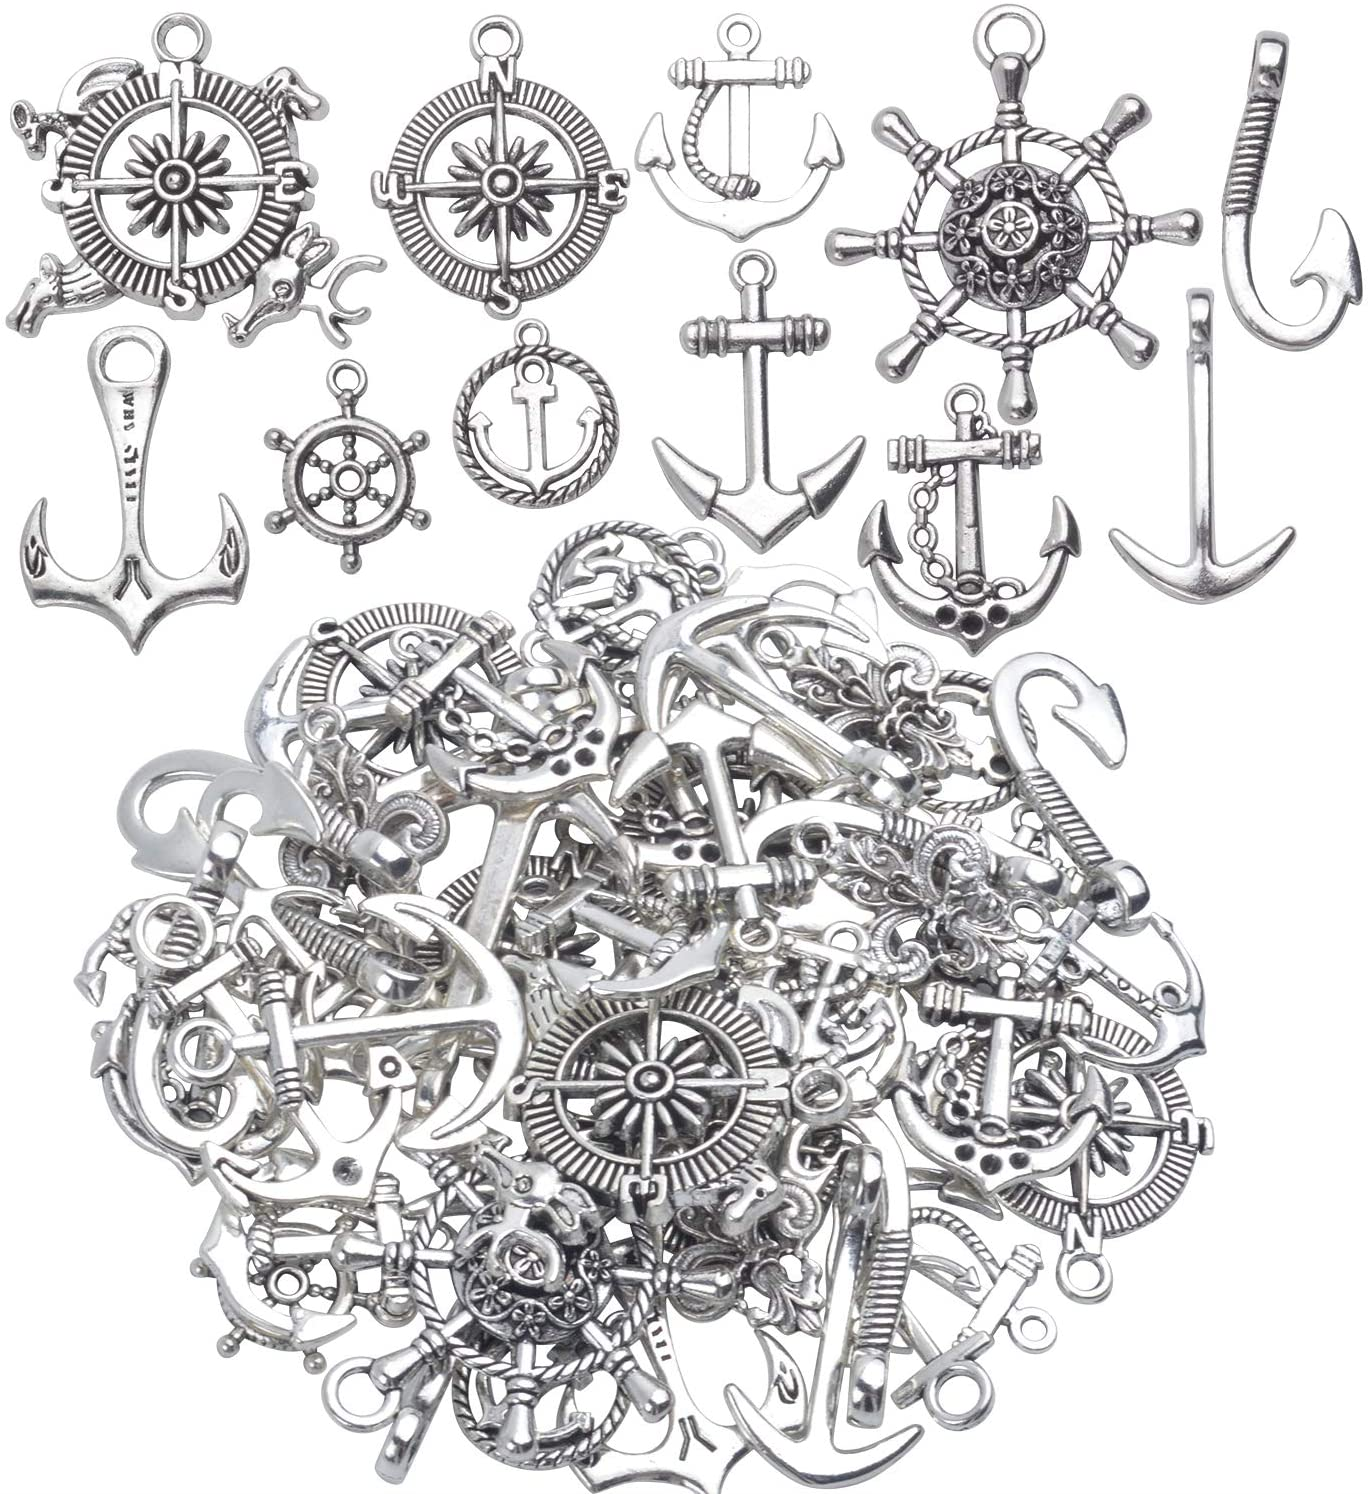 Nautical Charms Collection,100g (About 50pcs) Metal Alloy Nautical Anchor Charms Rudder Helm Ship Wheel Pendants Beads Charms Jewelry Making Accessories for DIY Necklace Bracelet - Silver